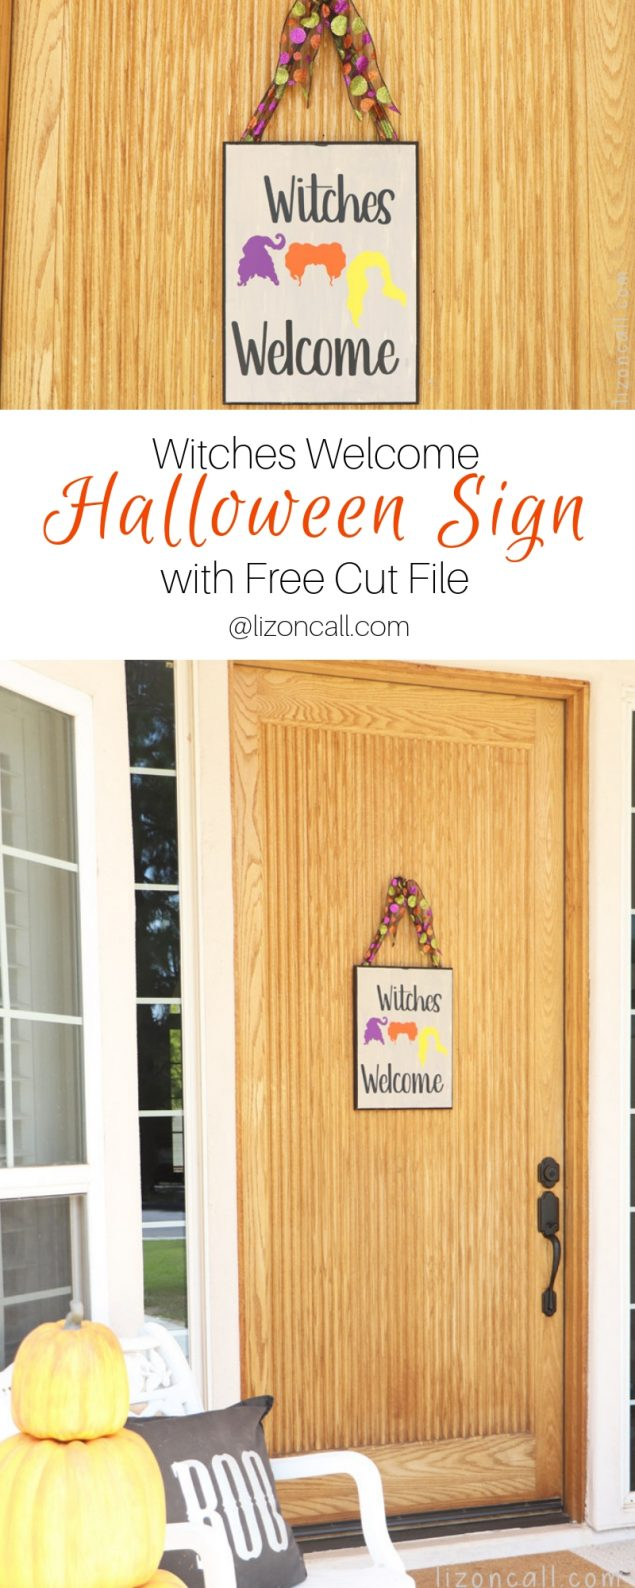 DIY Hocus Pocus Witches Welcome Sign | Includes free cut file!